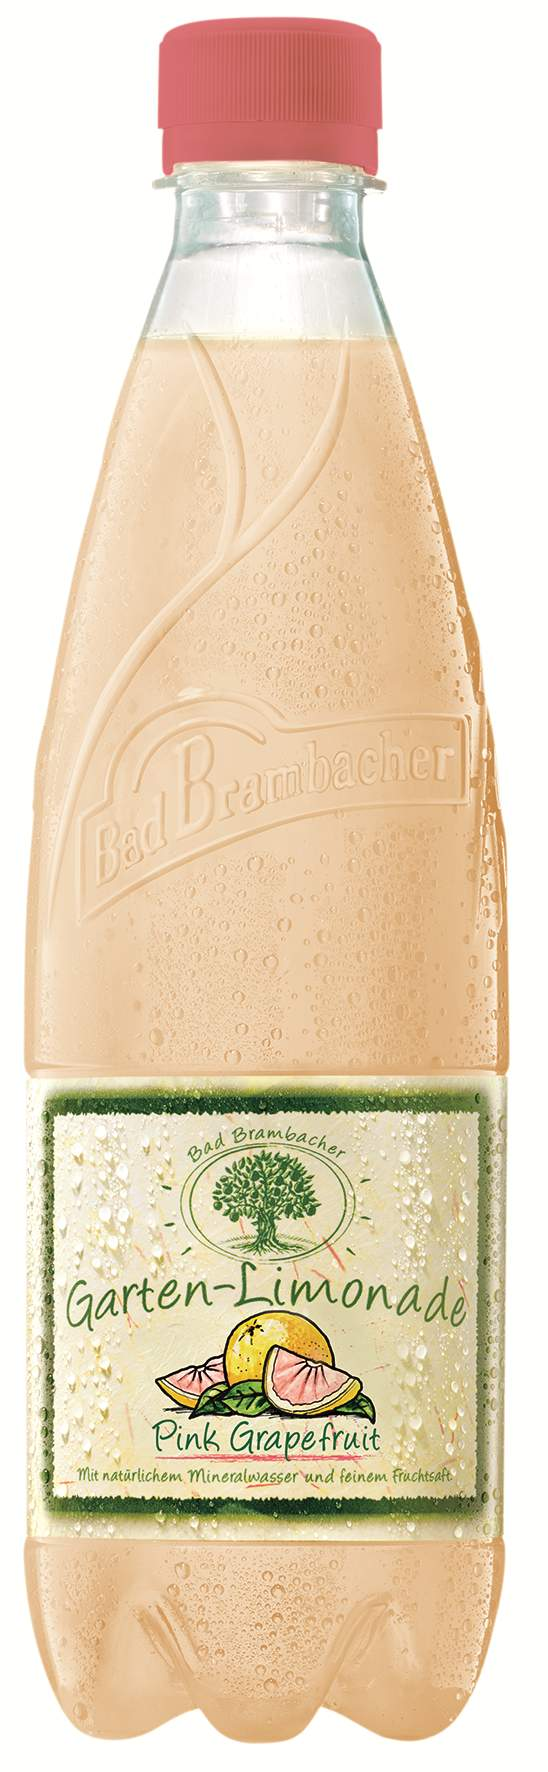 Bad Brambacher Garten Limonade Frisch Bad Brambacher Garten Limonade Pink Grapefruit 0 5l